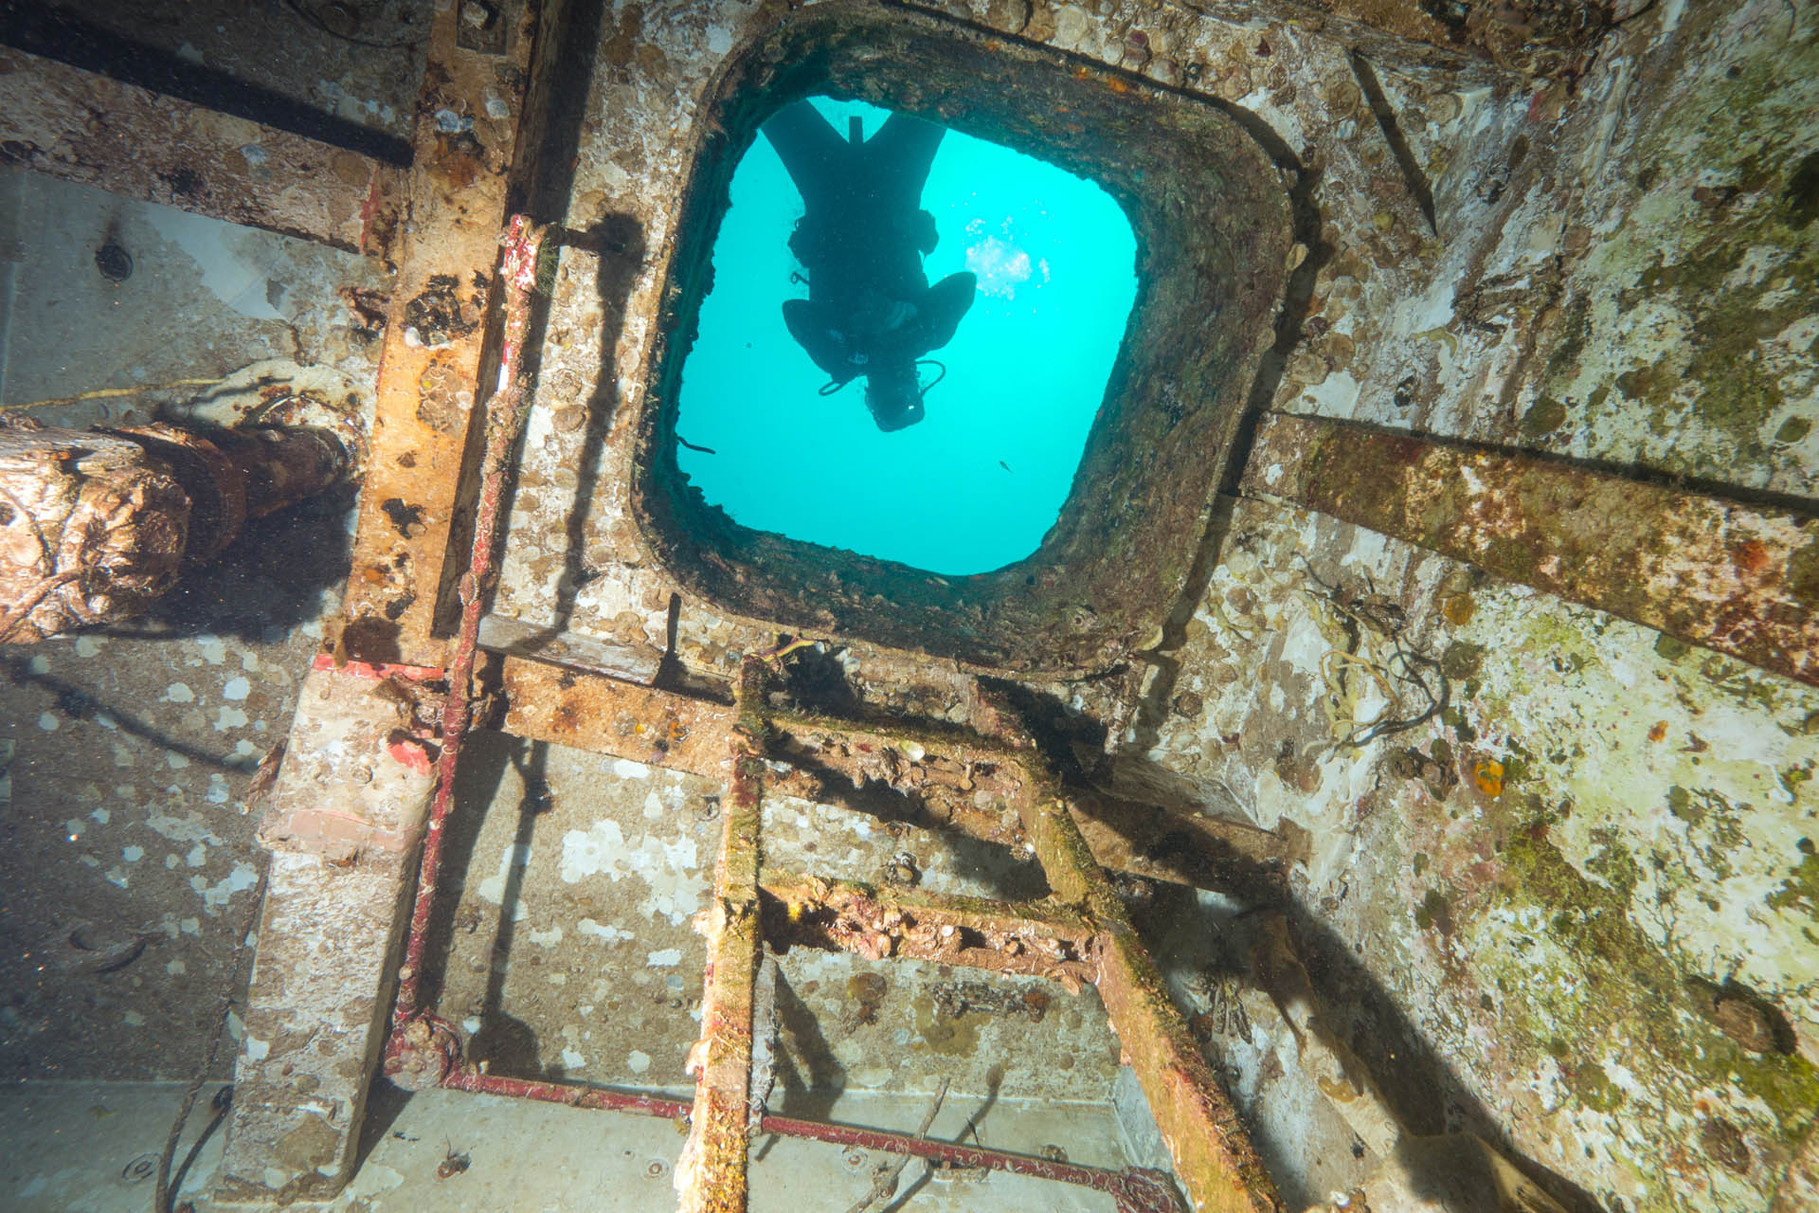 Spiegel grove wreck, Key Largo